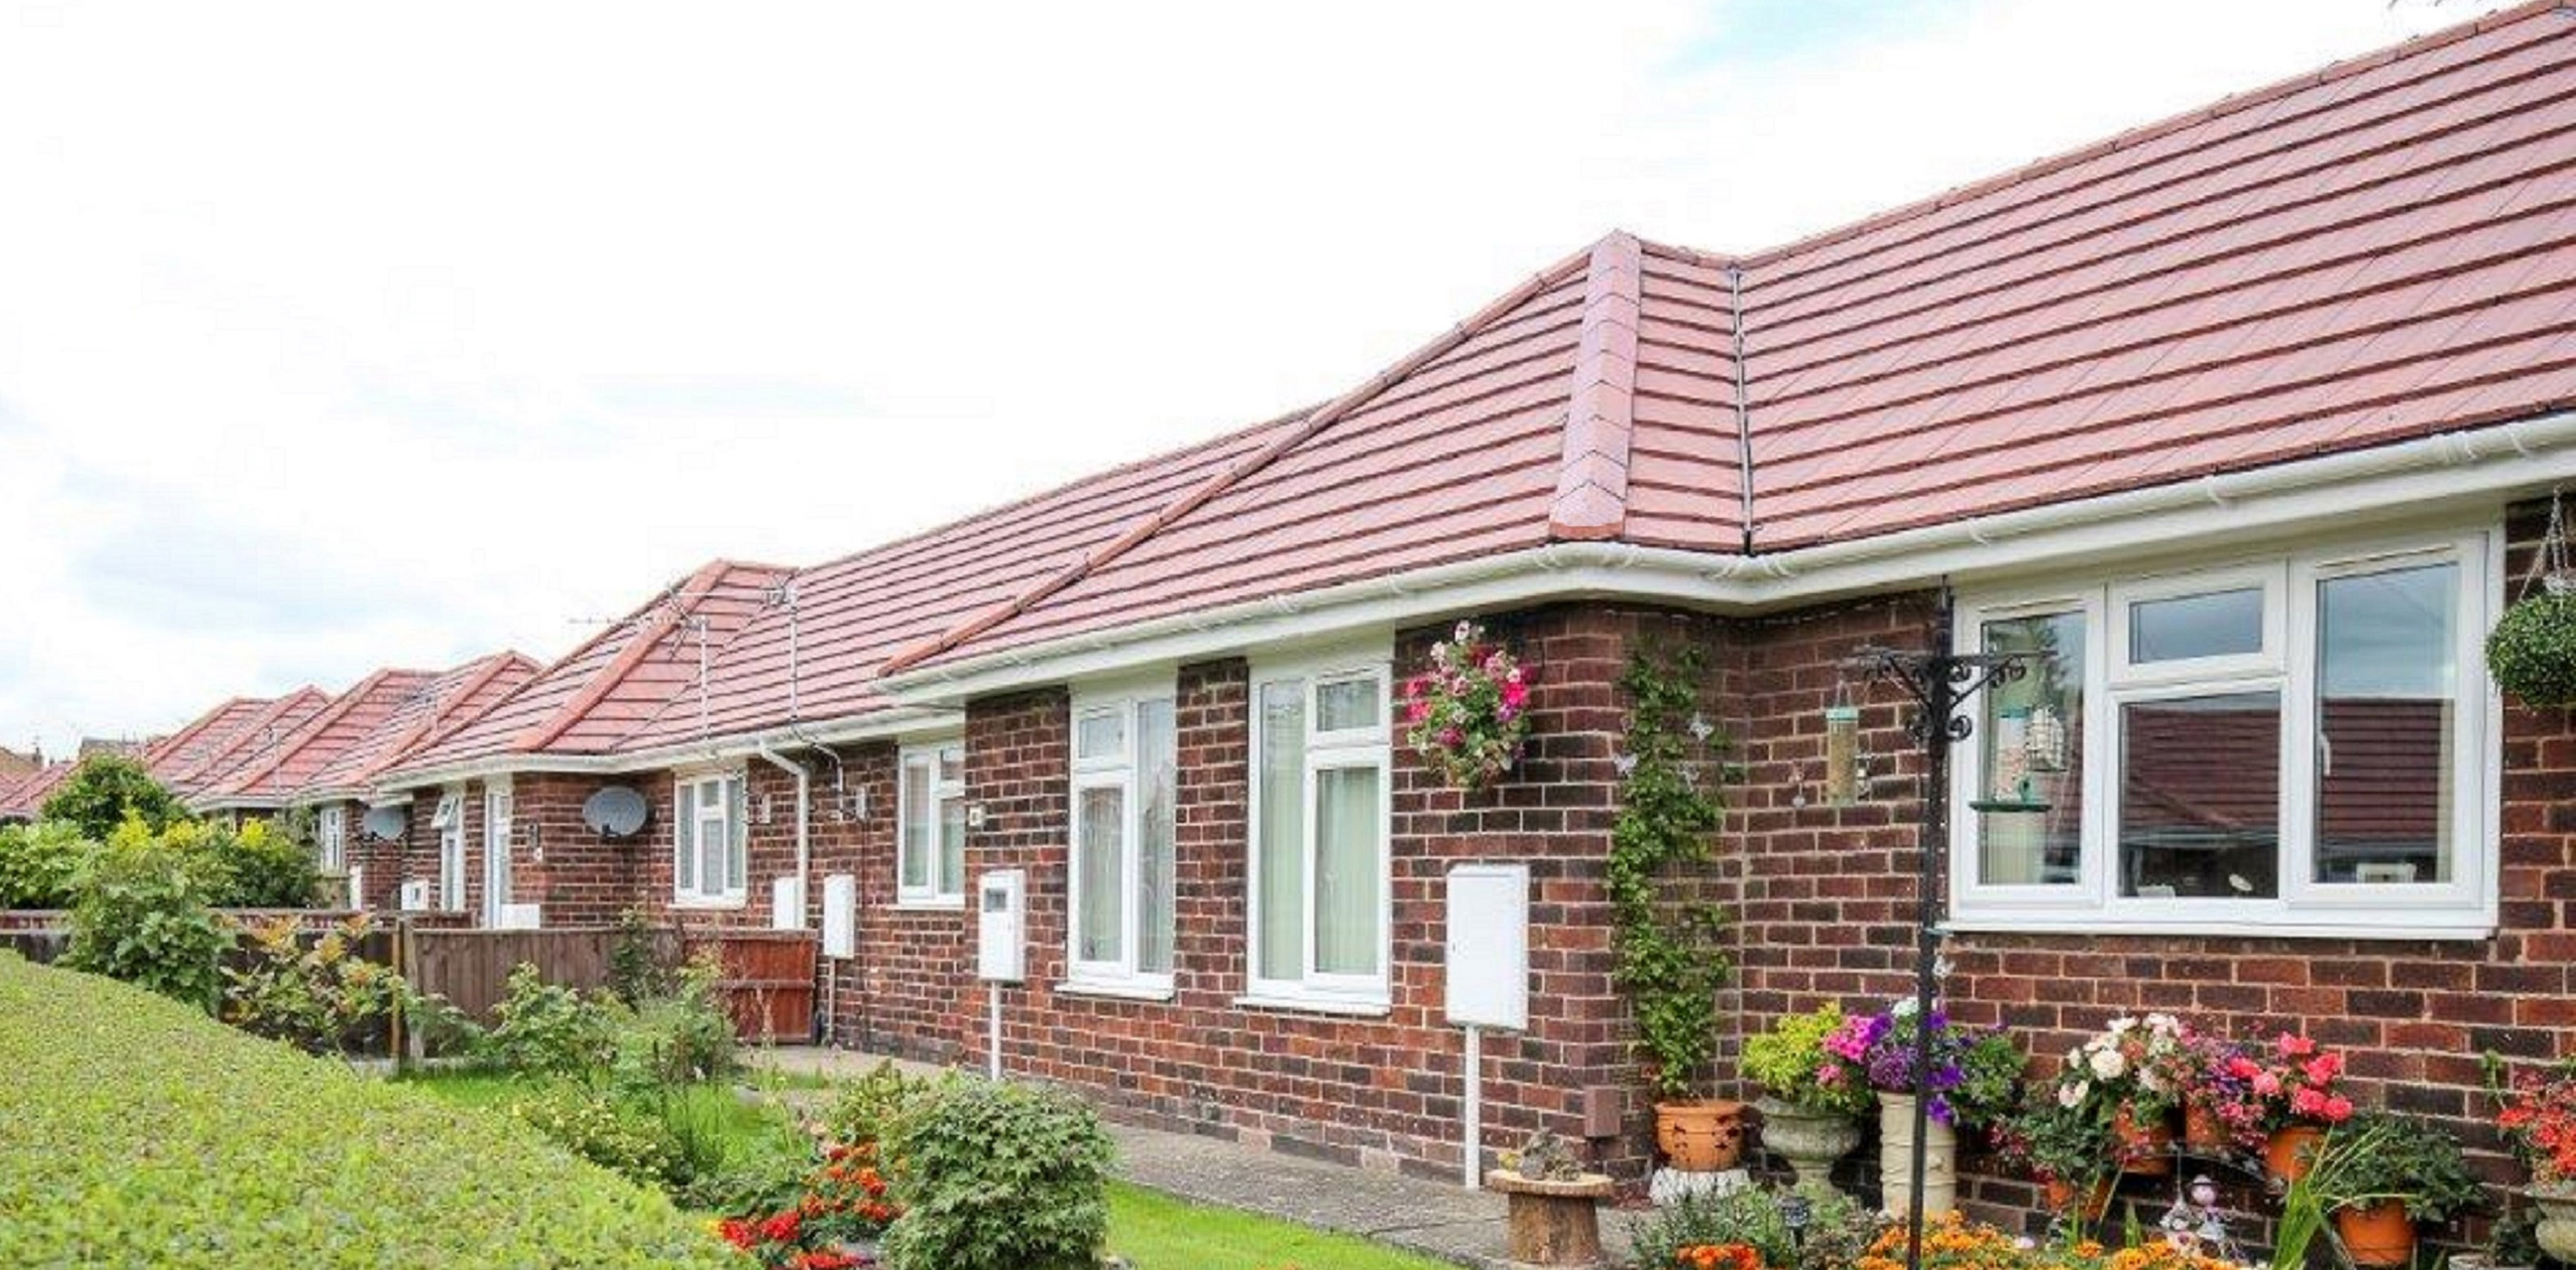 Russell Roof Tiles advises contractors to get re-roofing advice